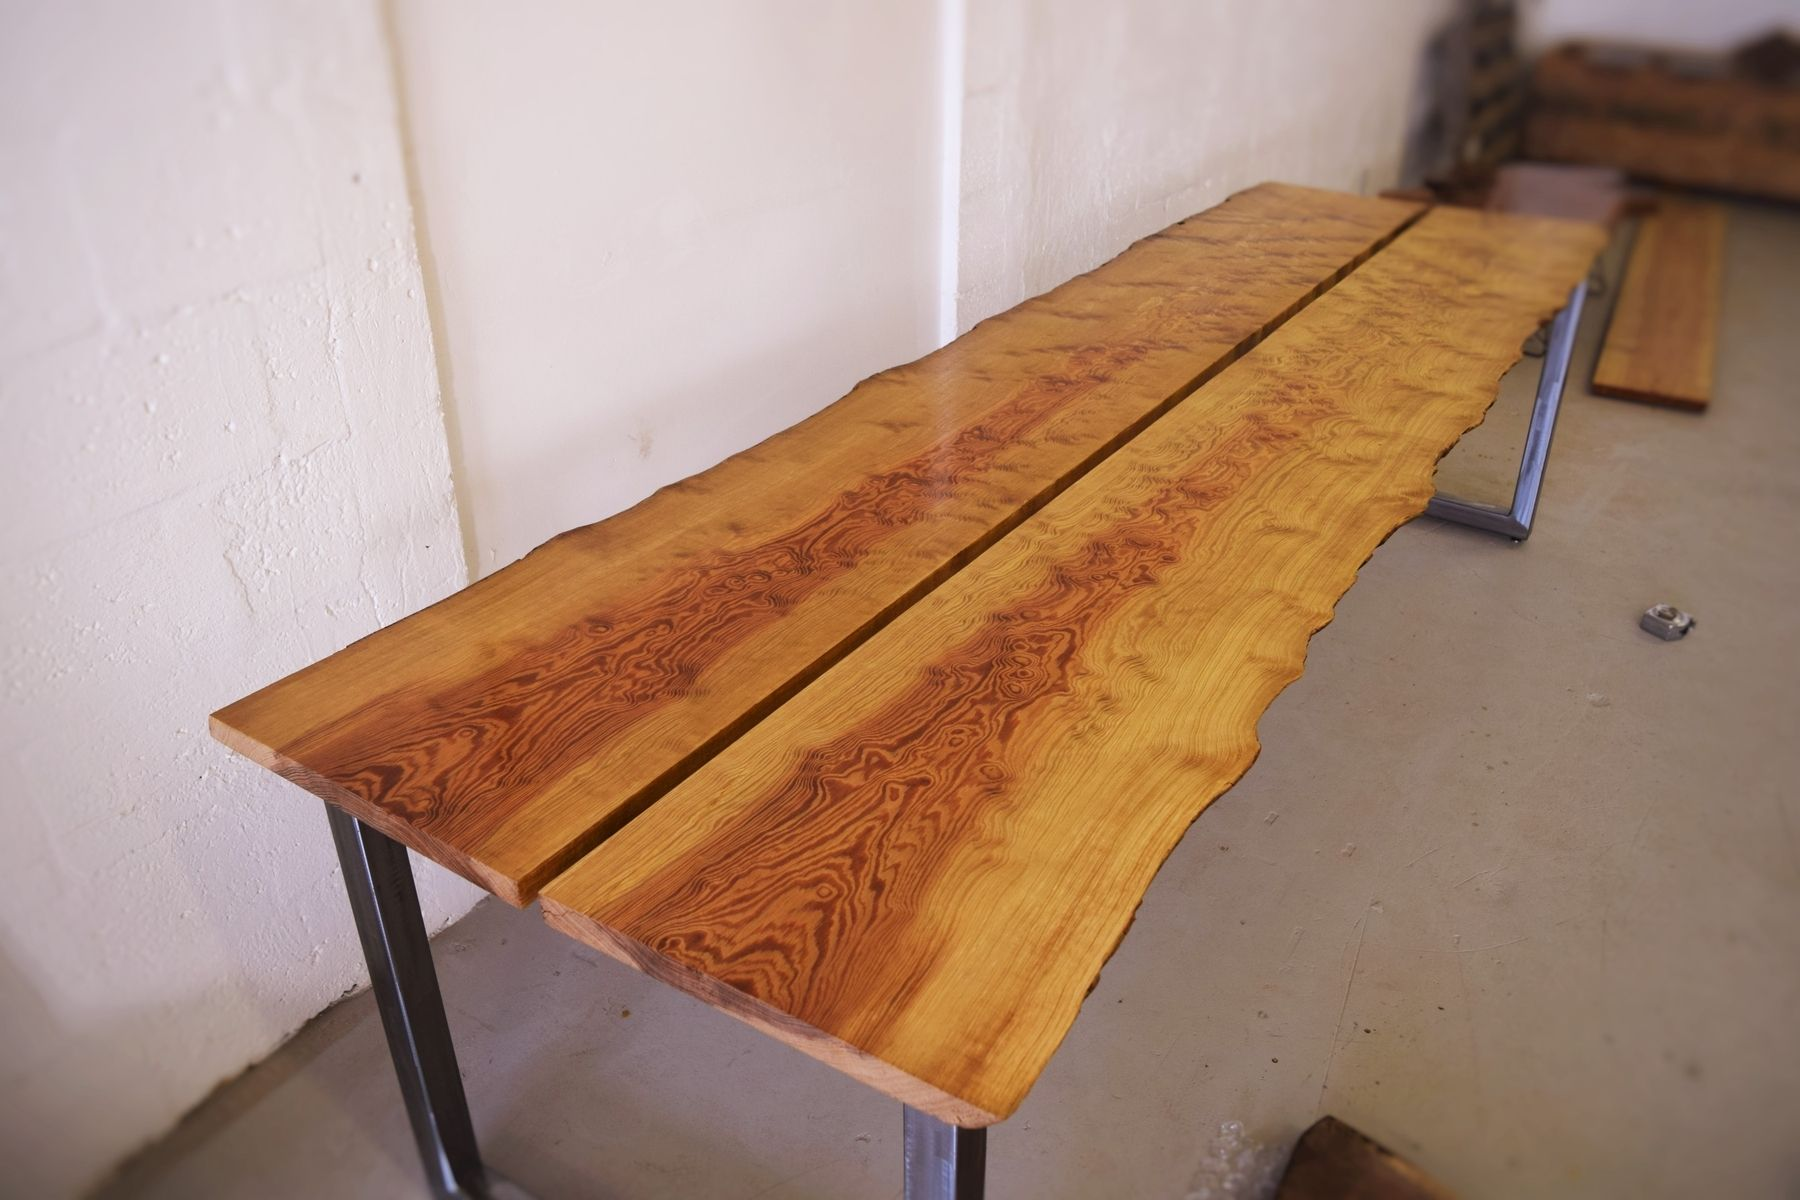 Hand made live edge curly sinker pine dining table by ozma for Finishing live edge wood